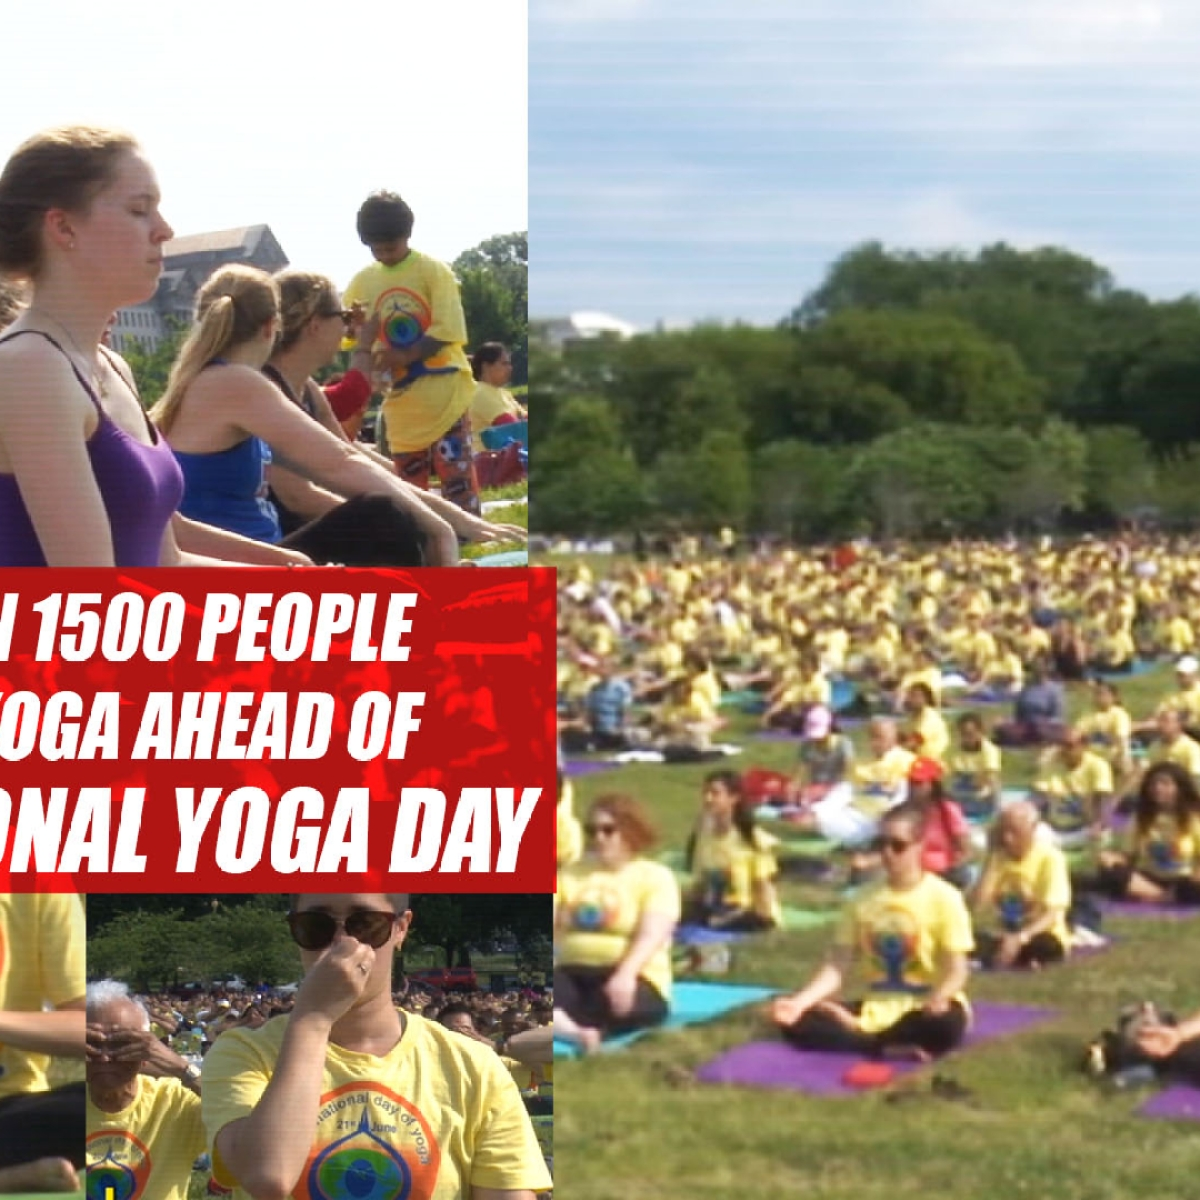 More Than 1500 People Perform YOGA Ahead of International Yoga Day In US